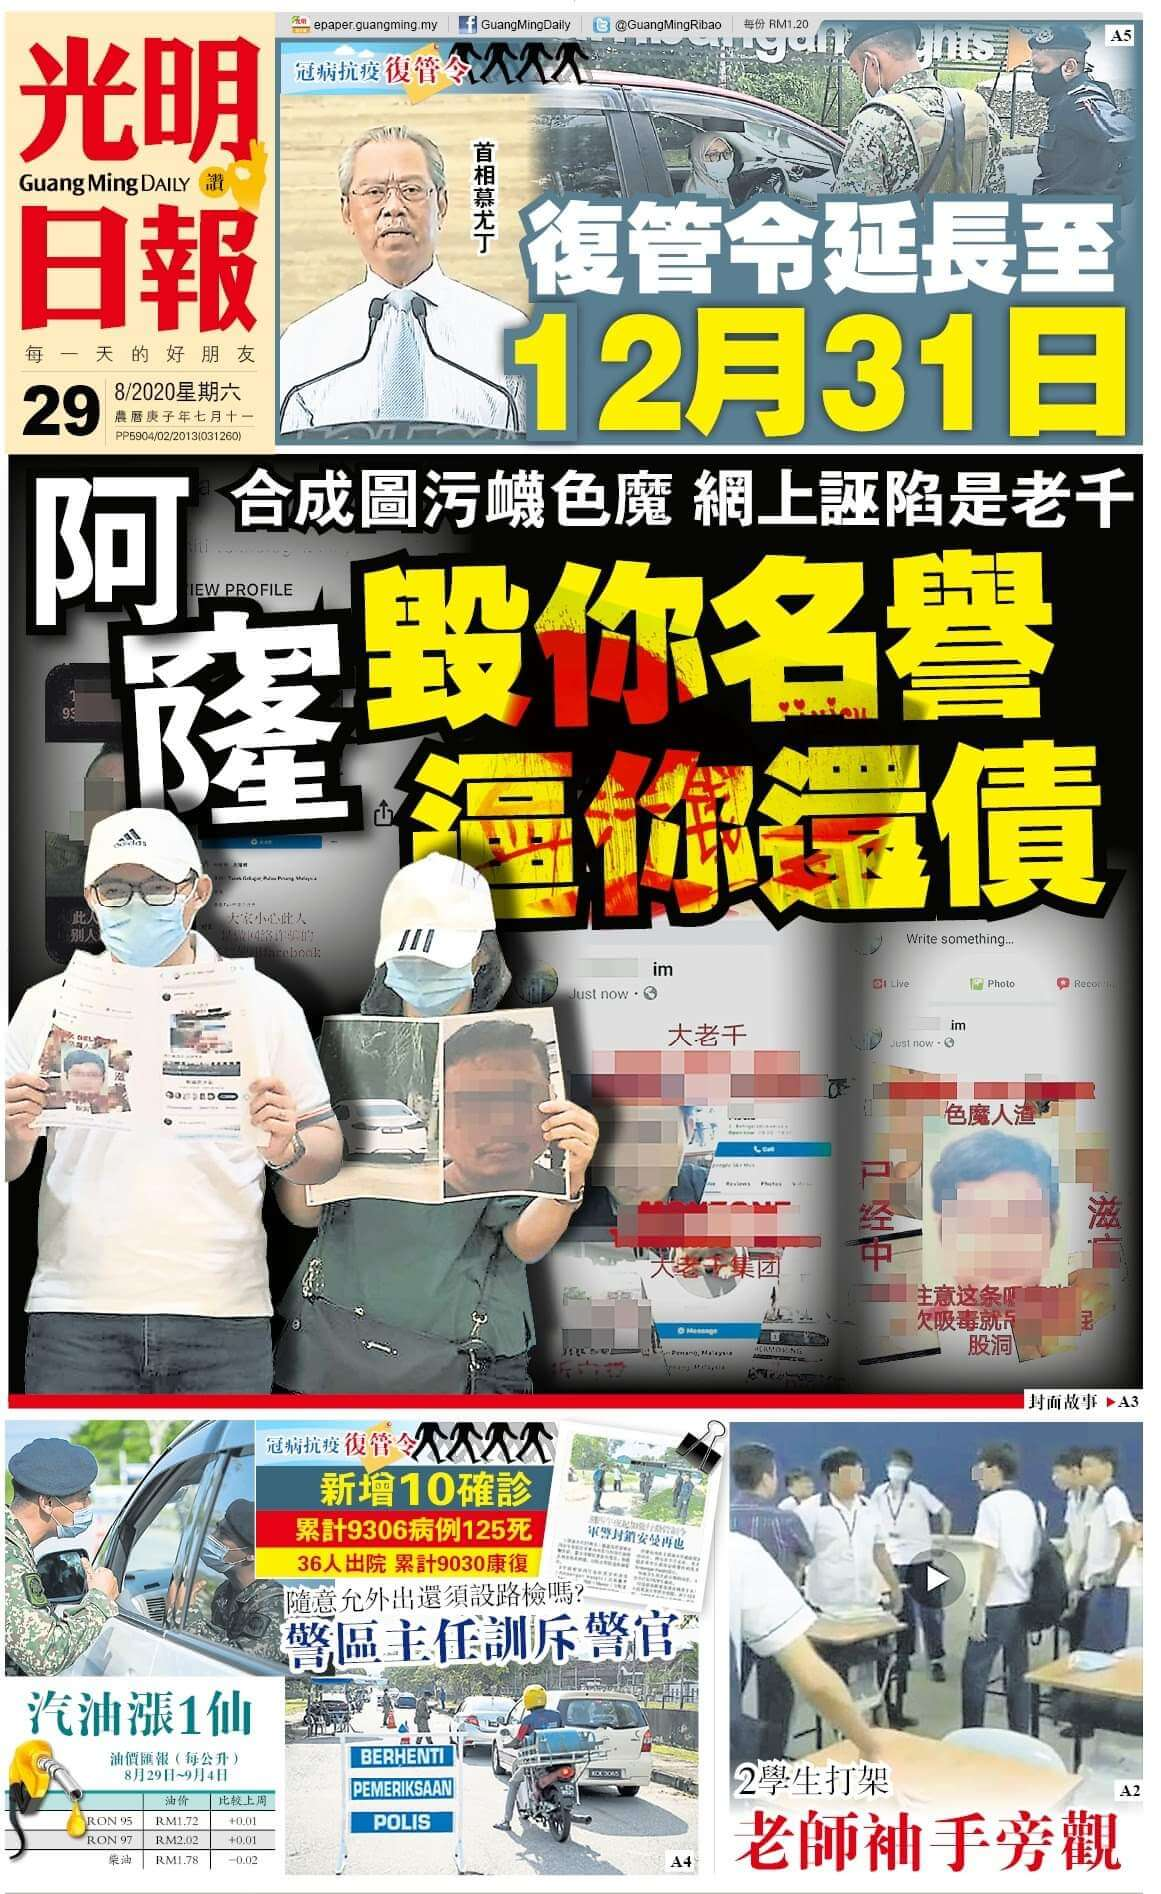 China Newspapers 2 Guangming Daily